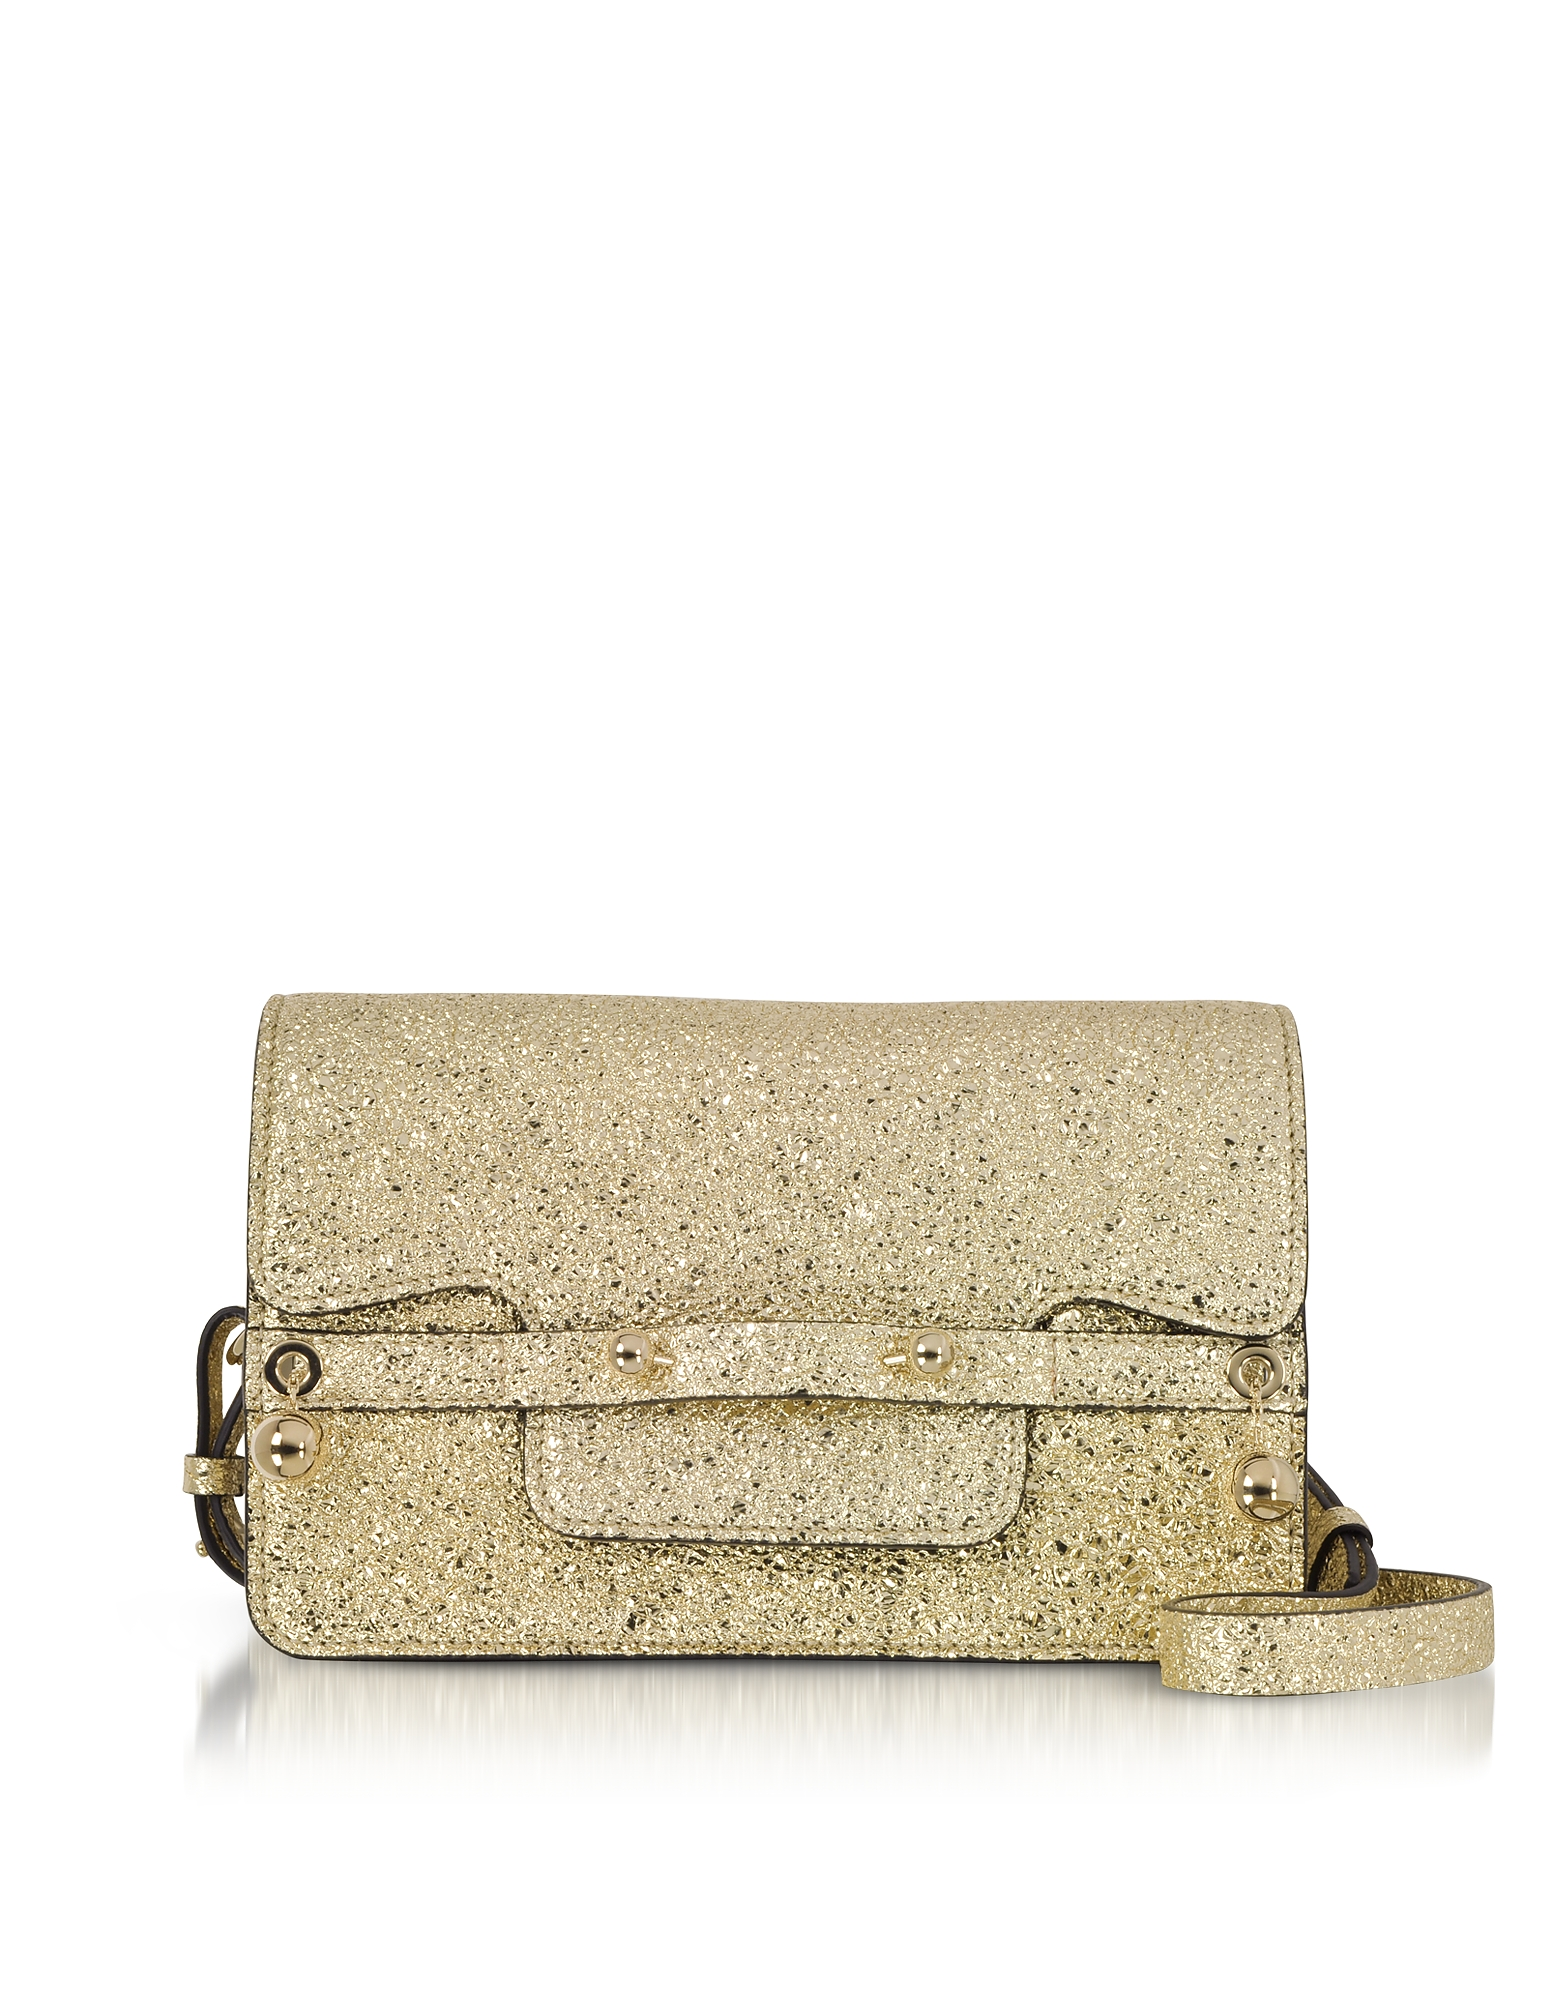 Image of RED Valentino Designer Handbags, Platinum Crackled Metallic Leather Flap Top Crossbody Bag